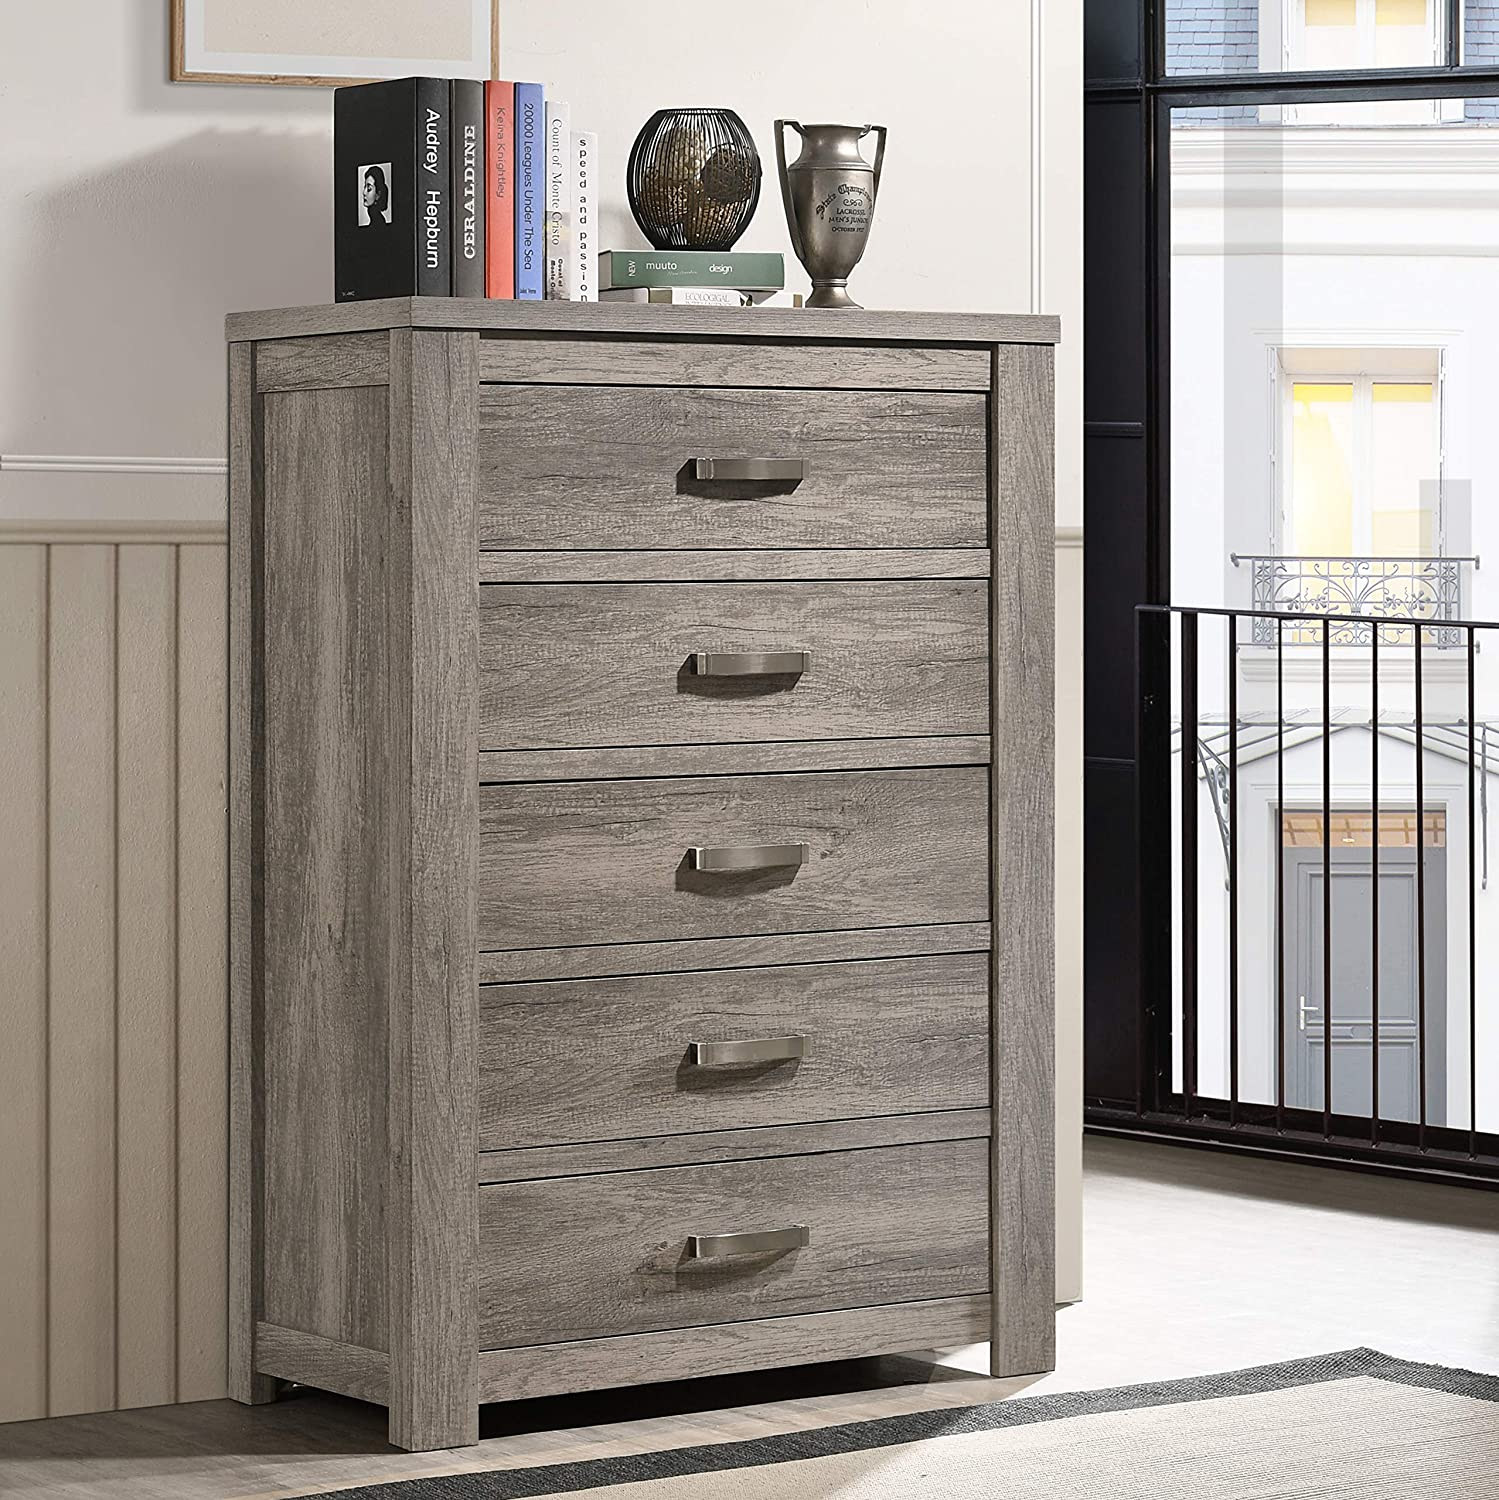 Roundhill Furniture B156C Contemporary Wood 5-Drawer Chest, Weathered Gray